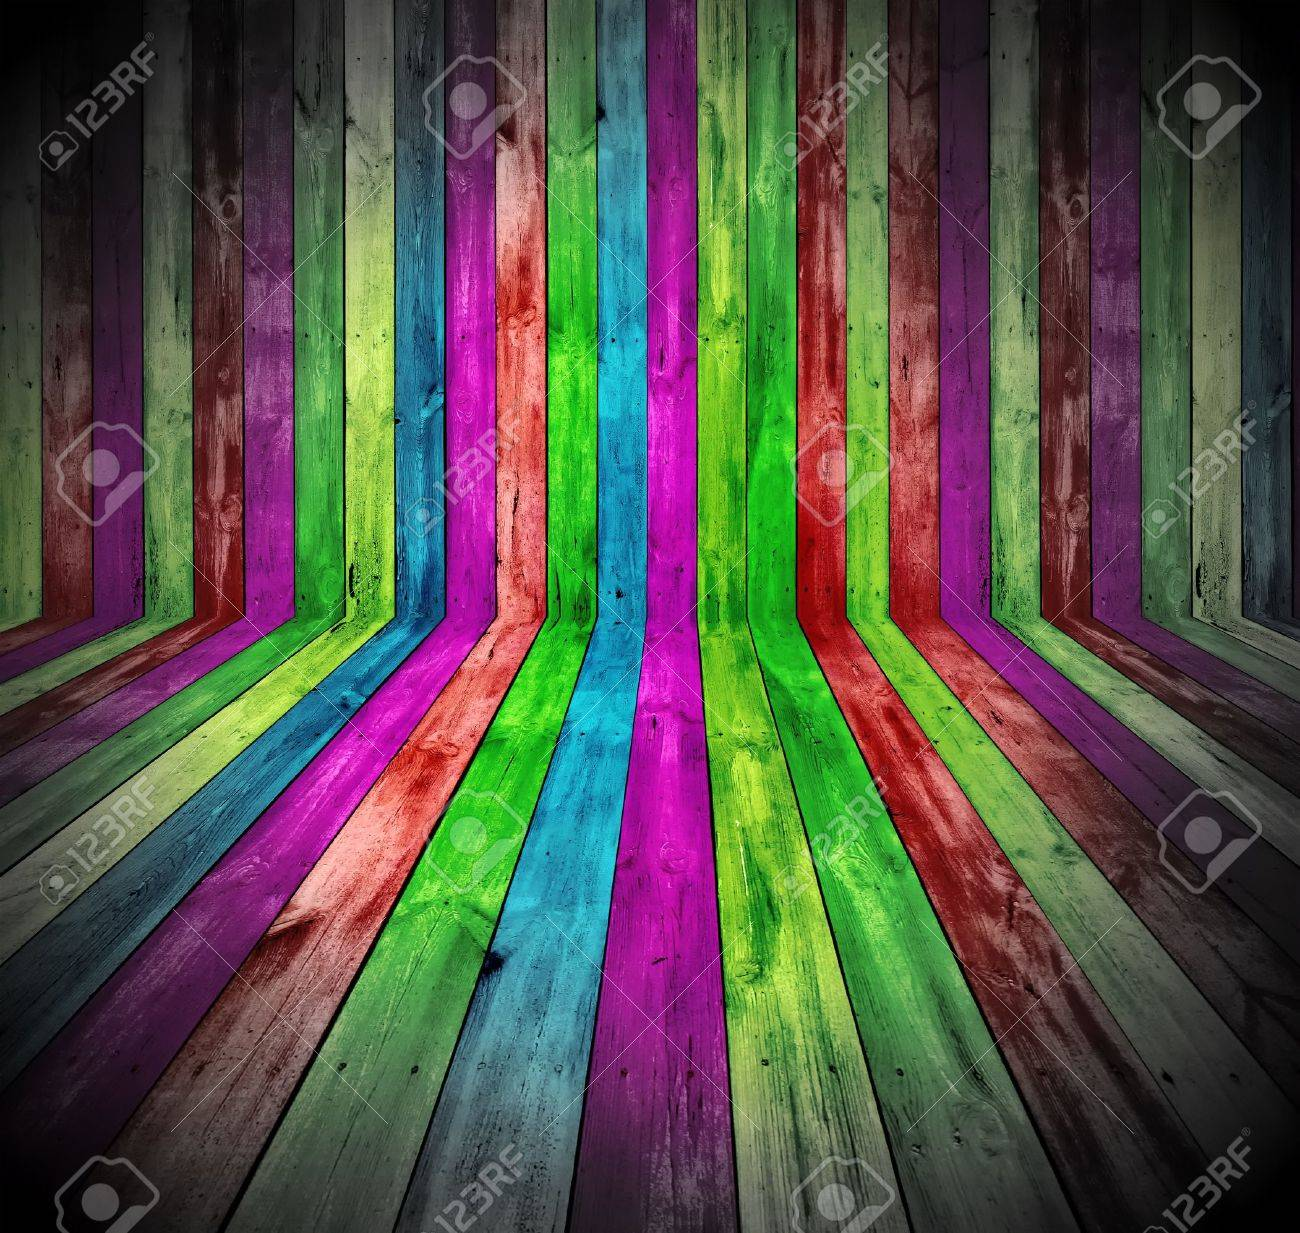 Vibrant Wooden Room Stock Photo - 9133062